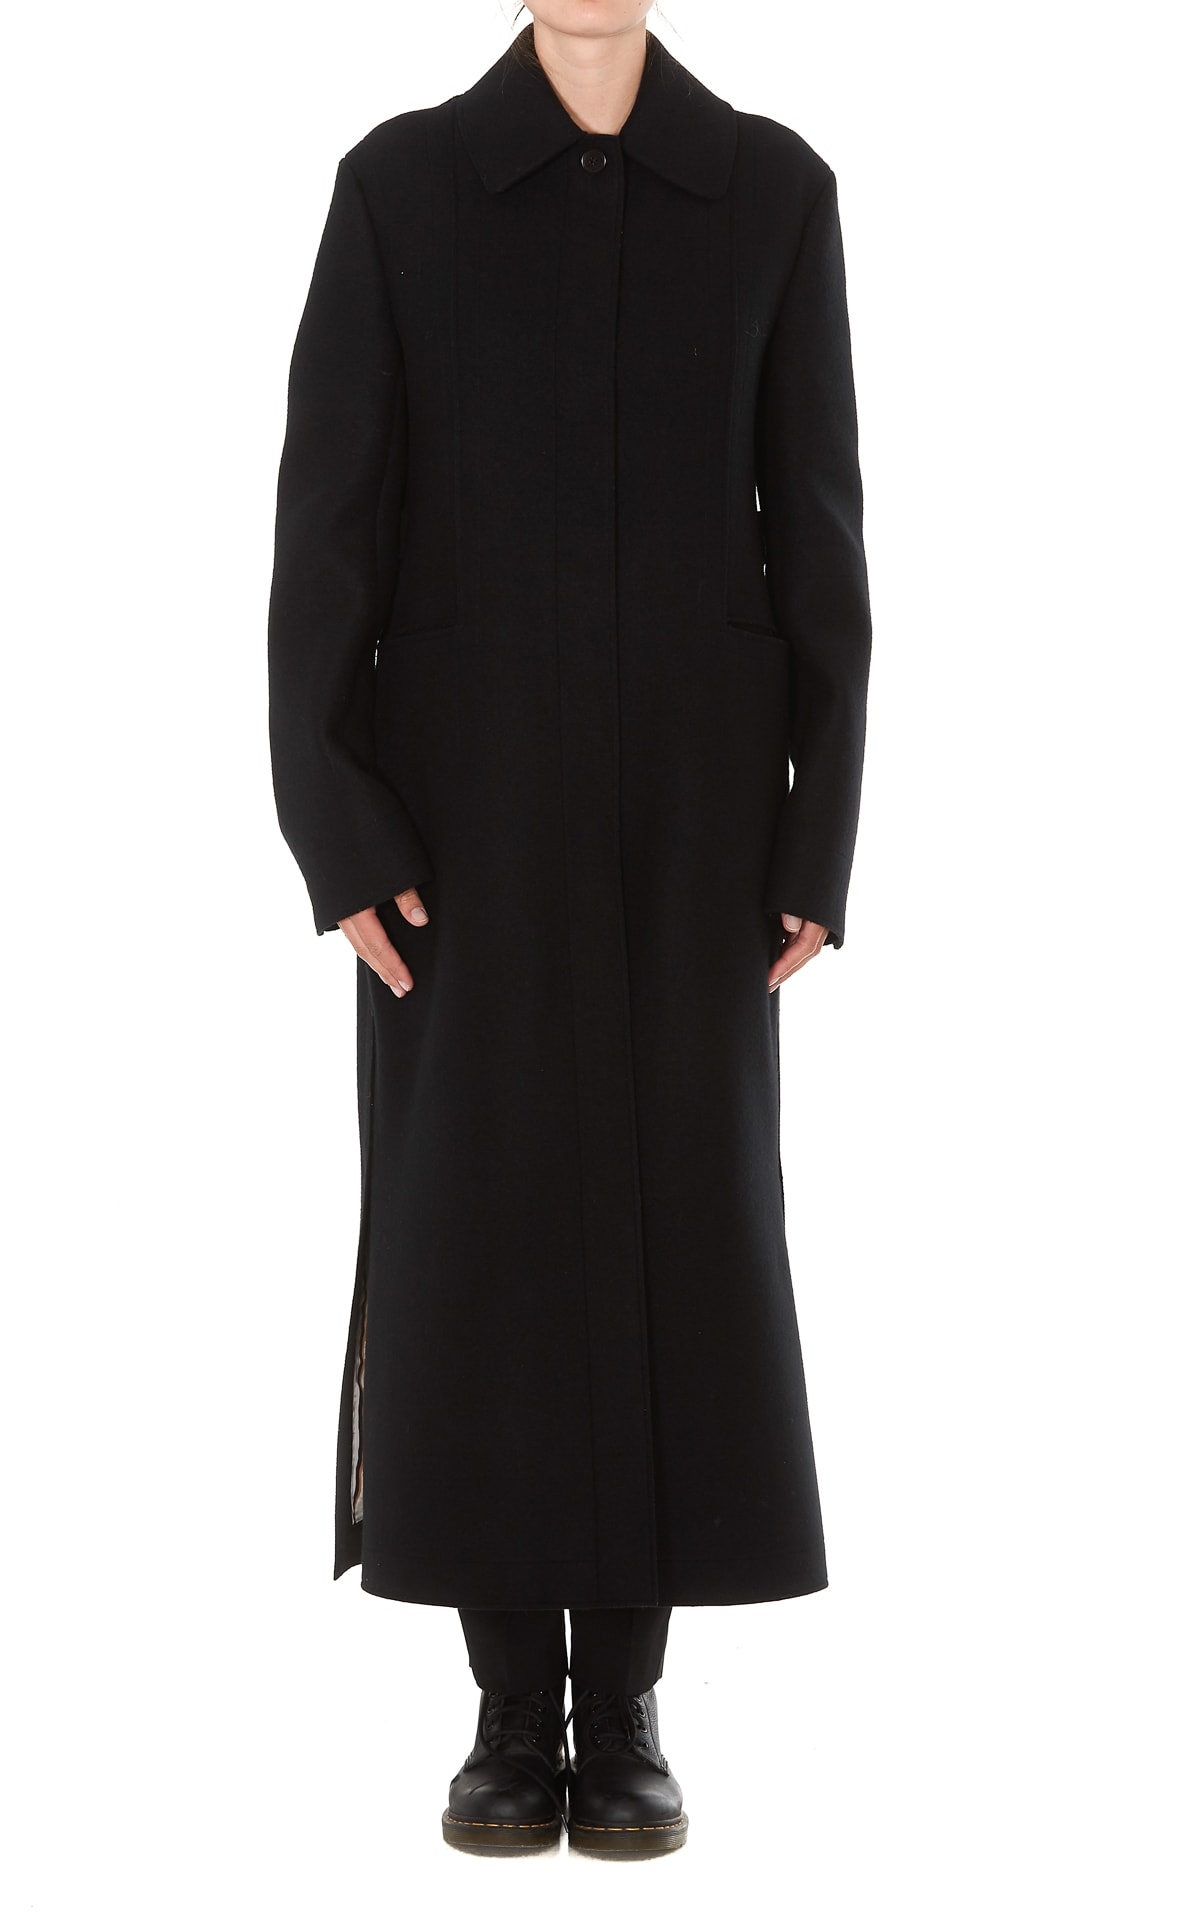 Jil Sander Lotus Coat